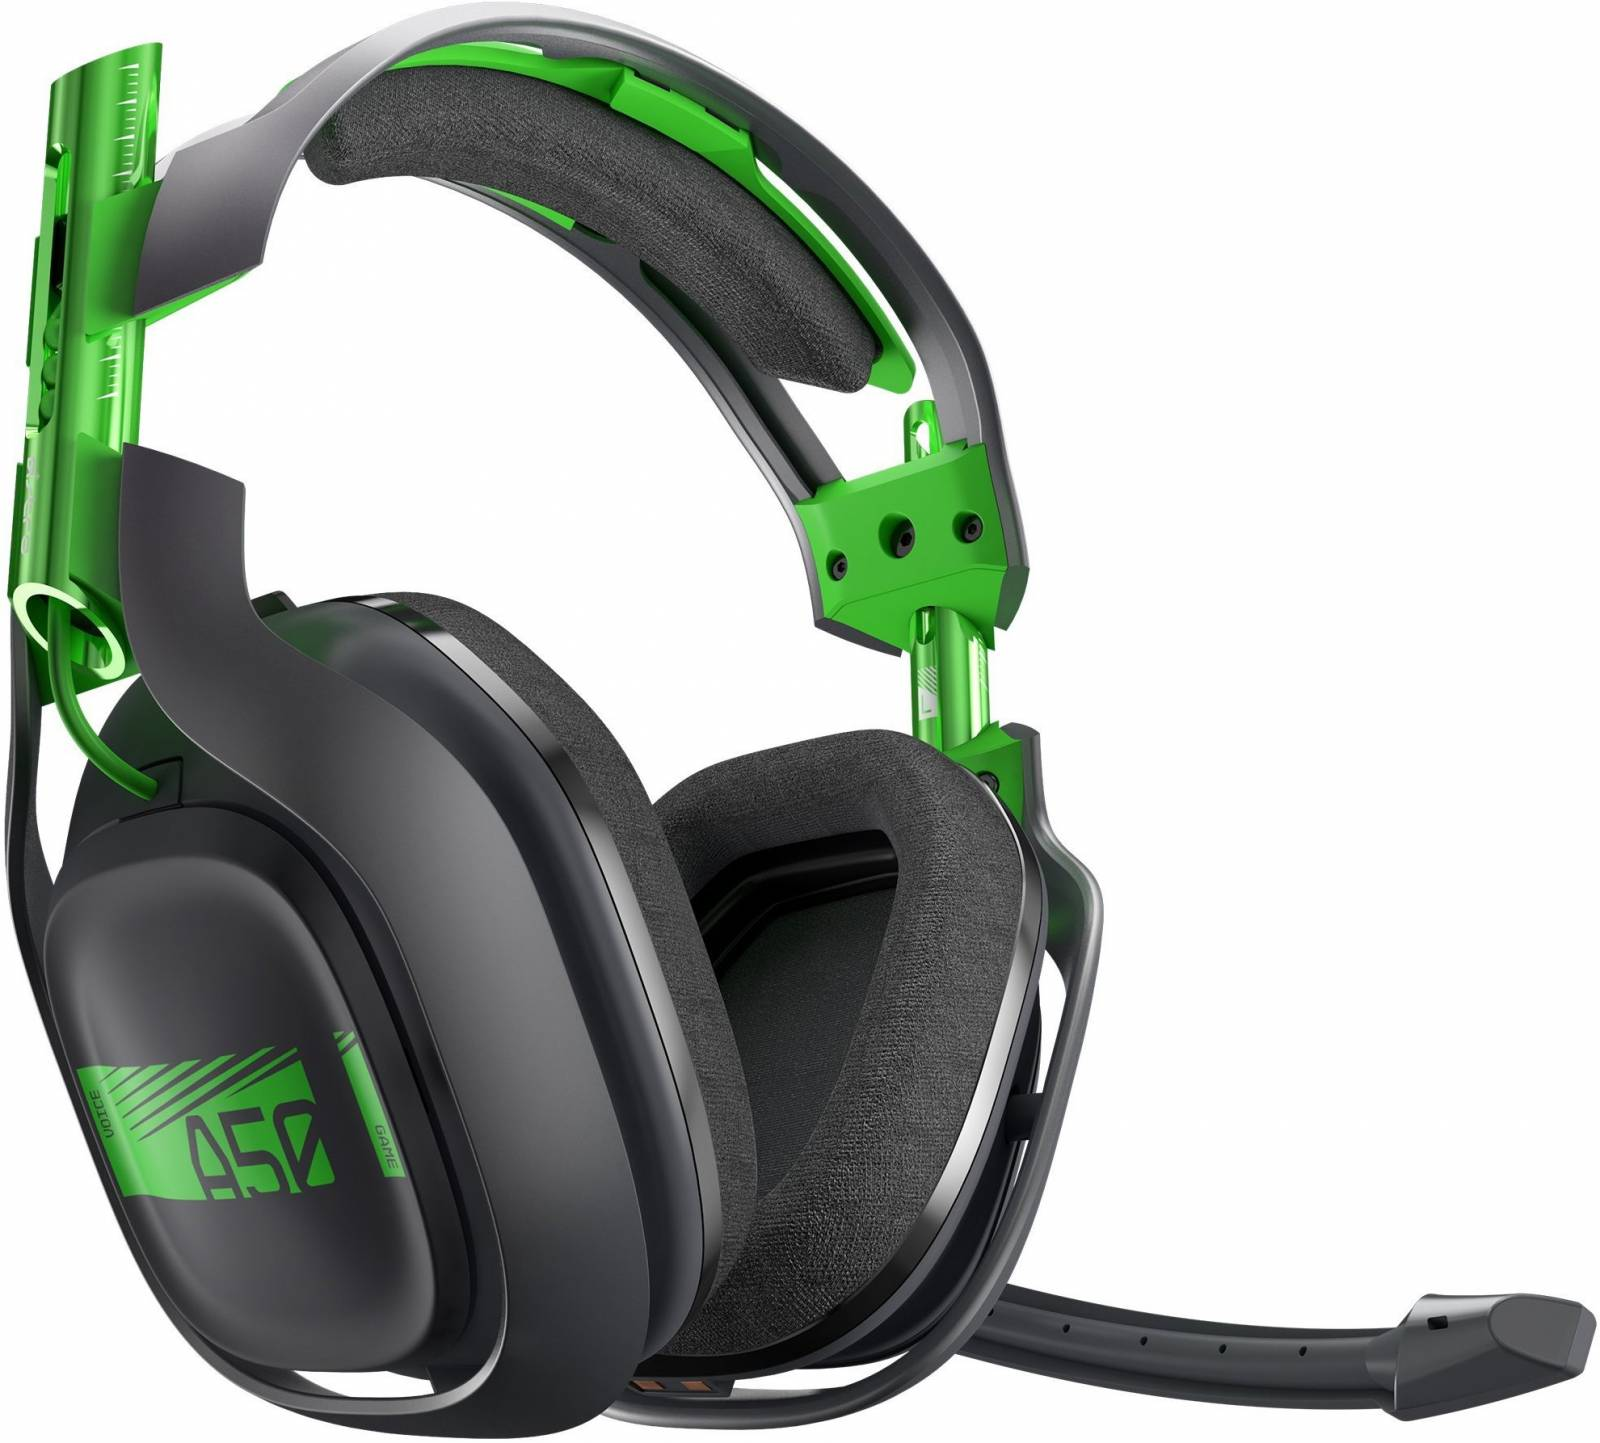 Image of wireless Astro PC headphones